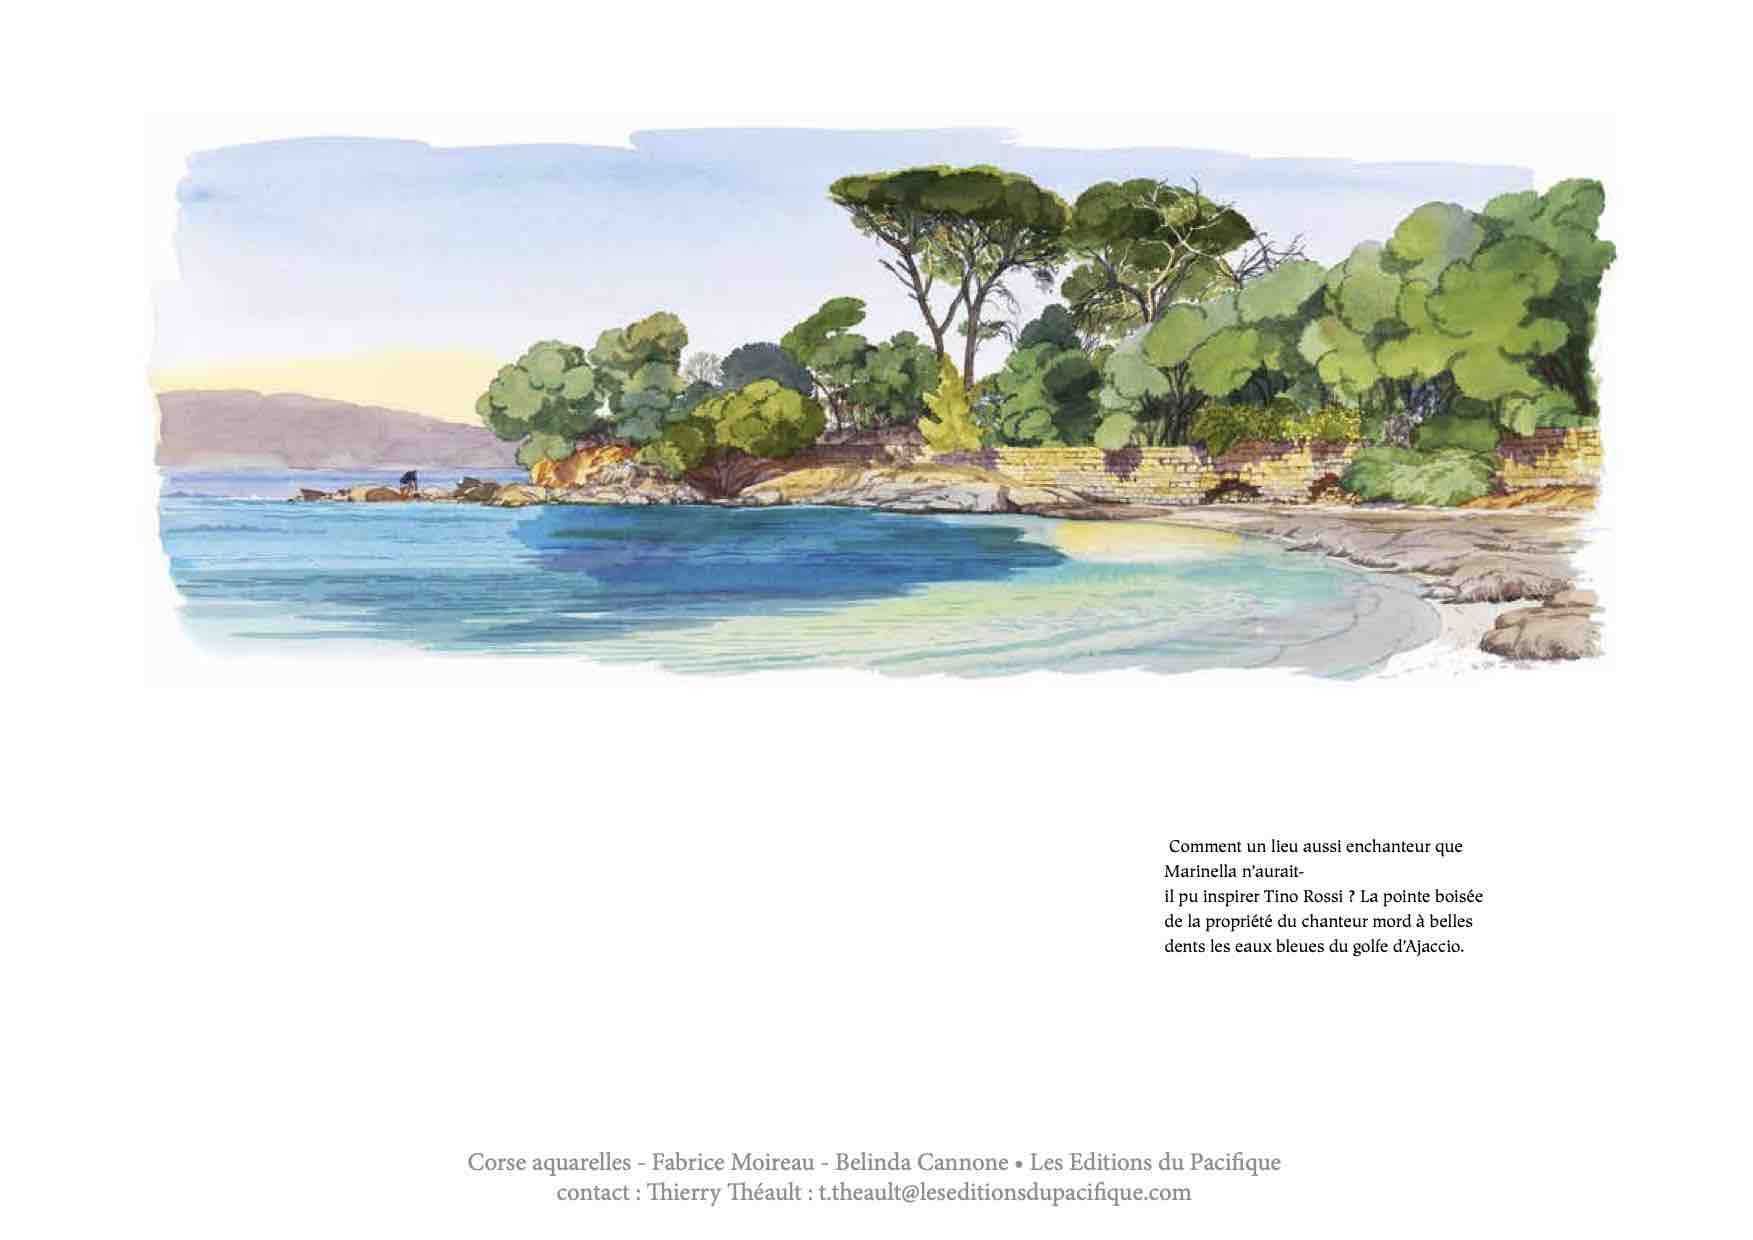 Page of book with beach adjoining Tino Rossi's property, watercolour by Fabrice Moireau, and text by Belinda Cannone ©Les Editions du Pacifique